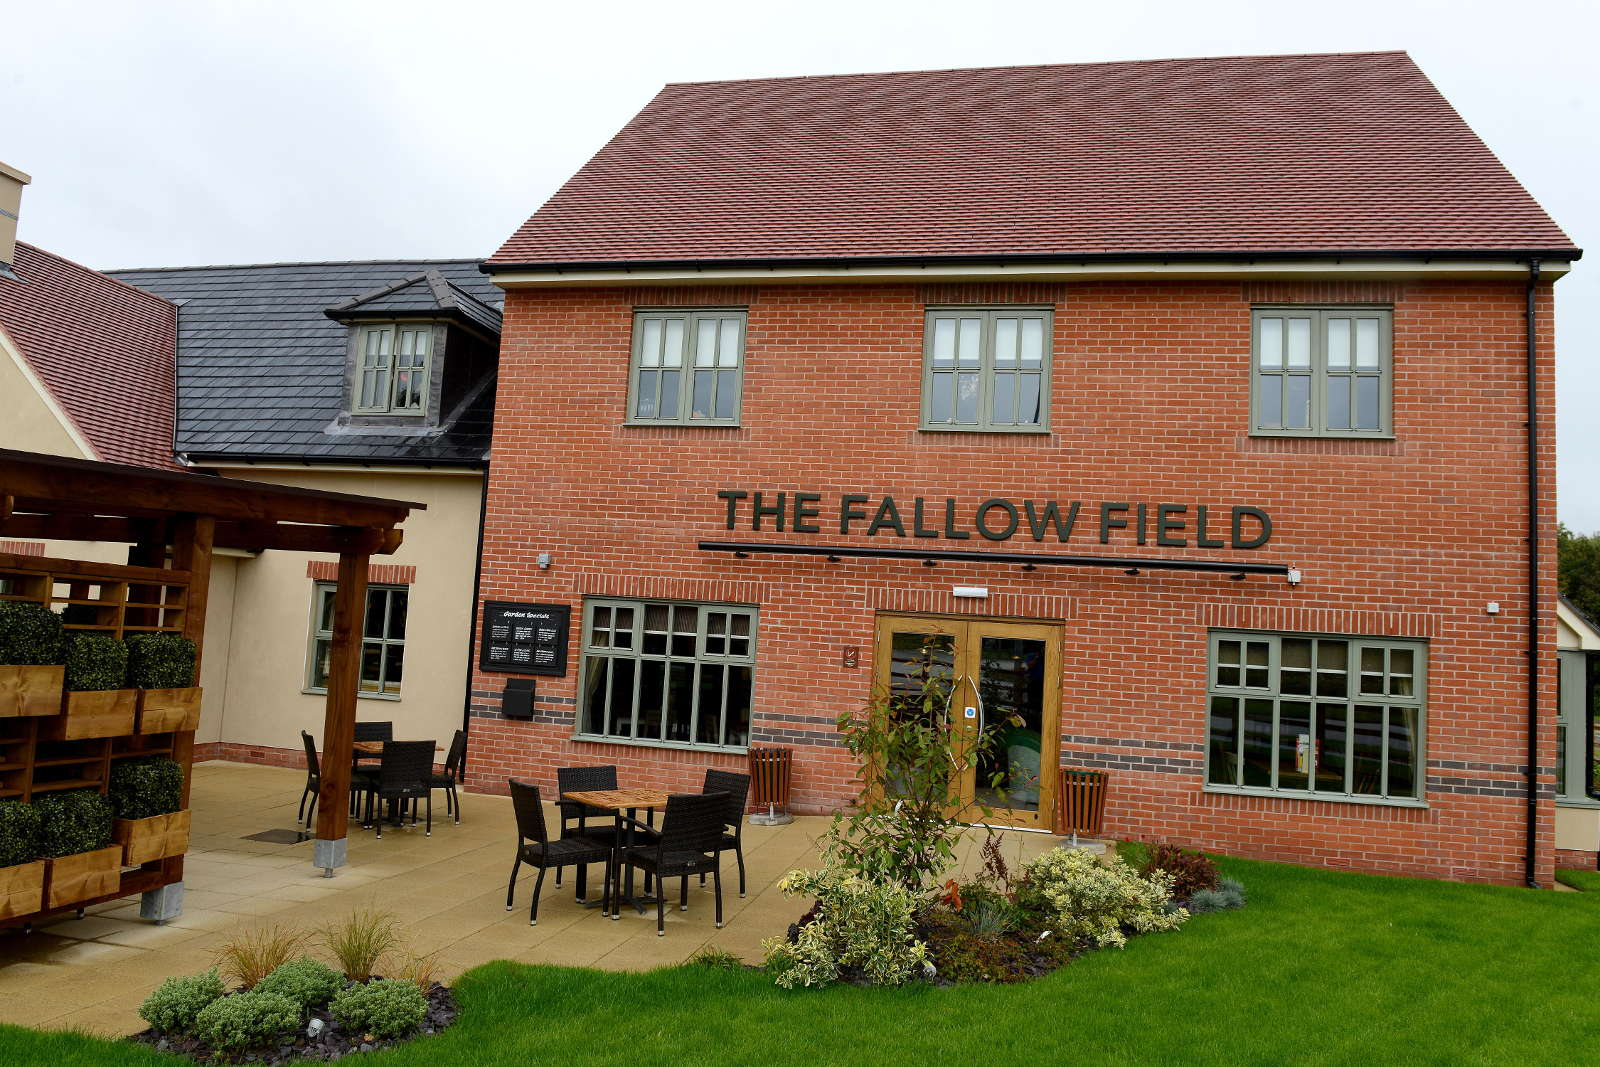 Fallow Field Hadley by Marston's Inn - Telford, West Midlands TF1 6AF - 01952 603542 | ShowMeLocal.com